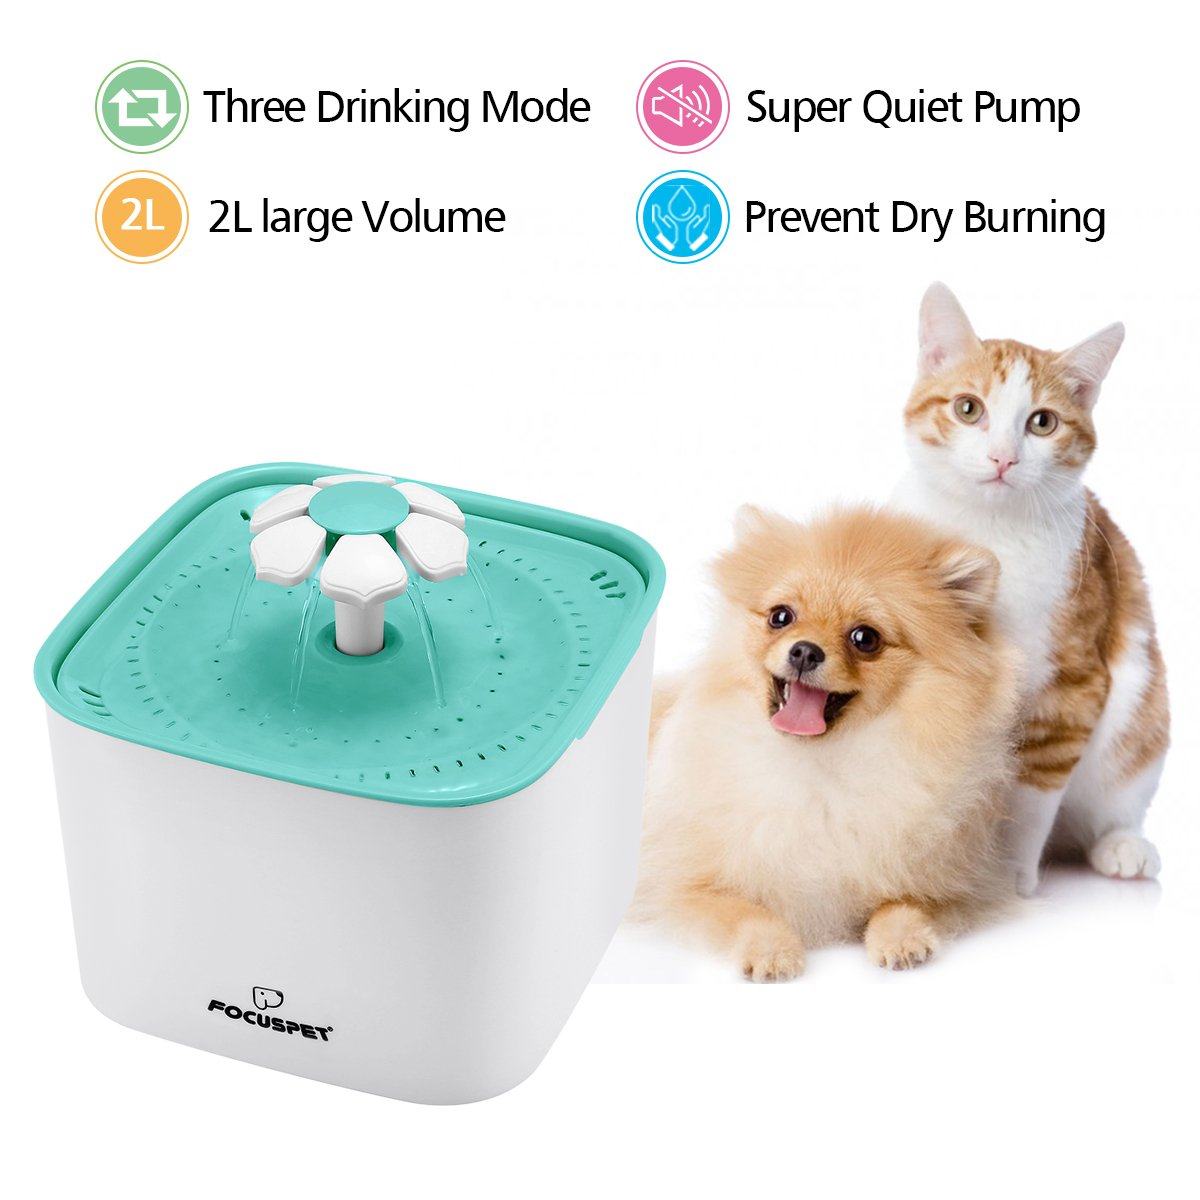 FOCUSPET Cat Fountain, 2L Pet Flower Fountain Automatic Electric Pet Water Dispenser, Pet Health Caring Fountain with Filter Suitable for Cats, Dogs and Small Animals